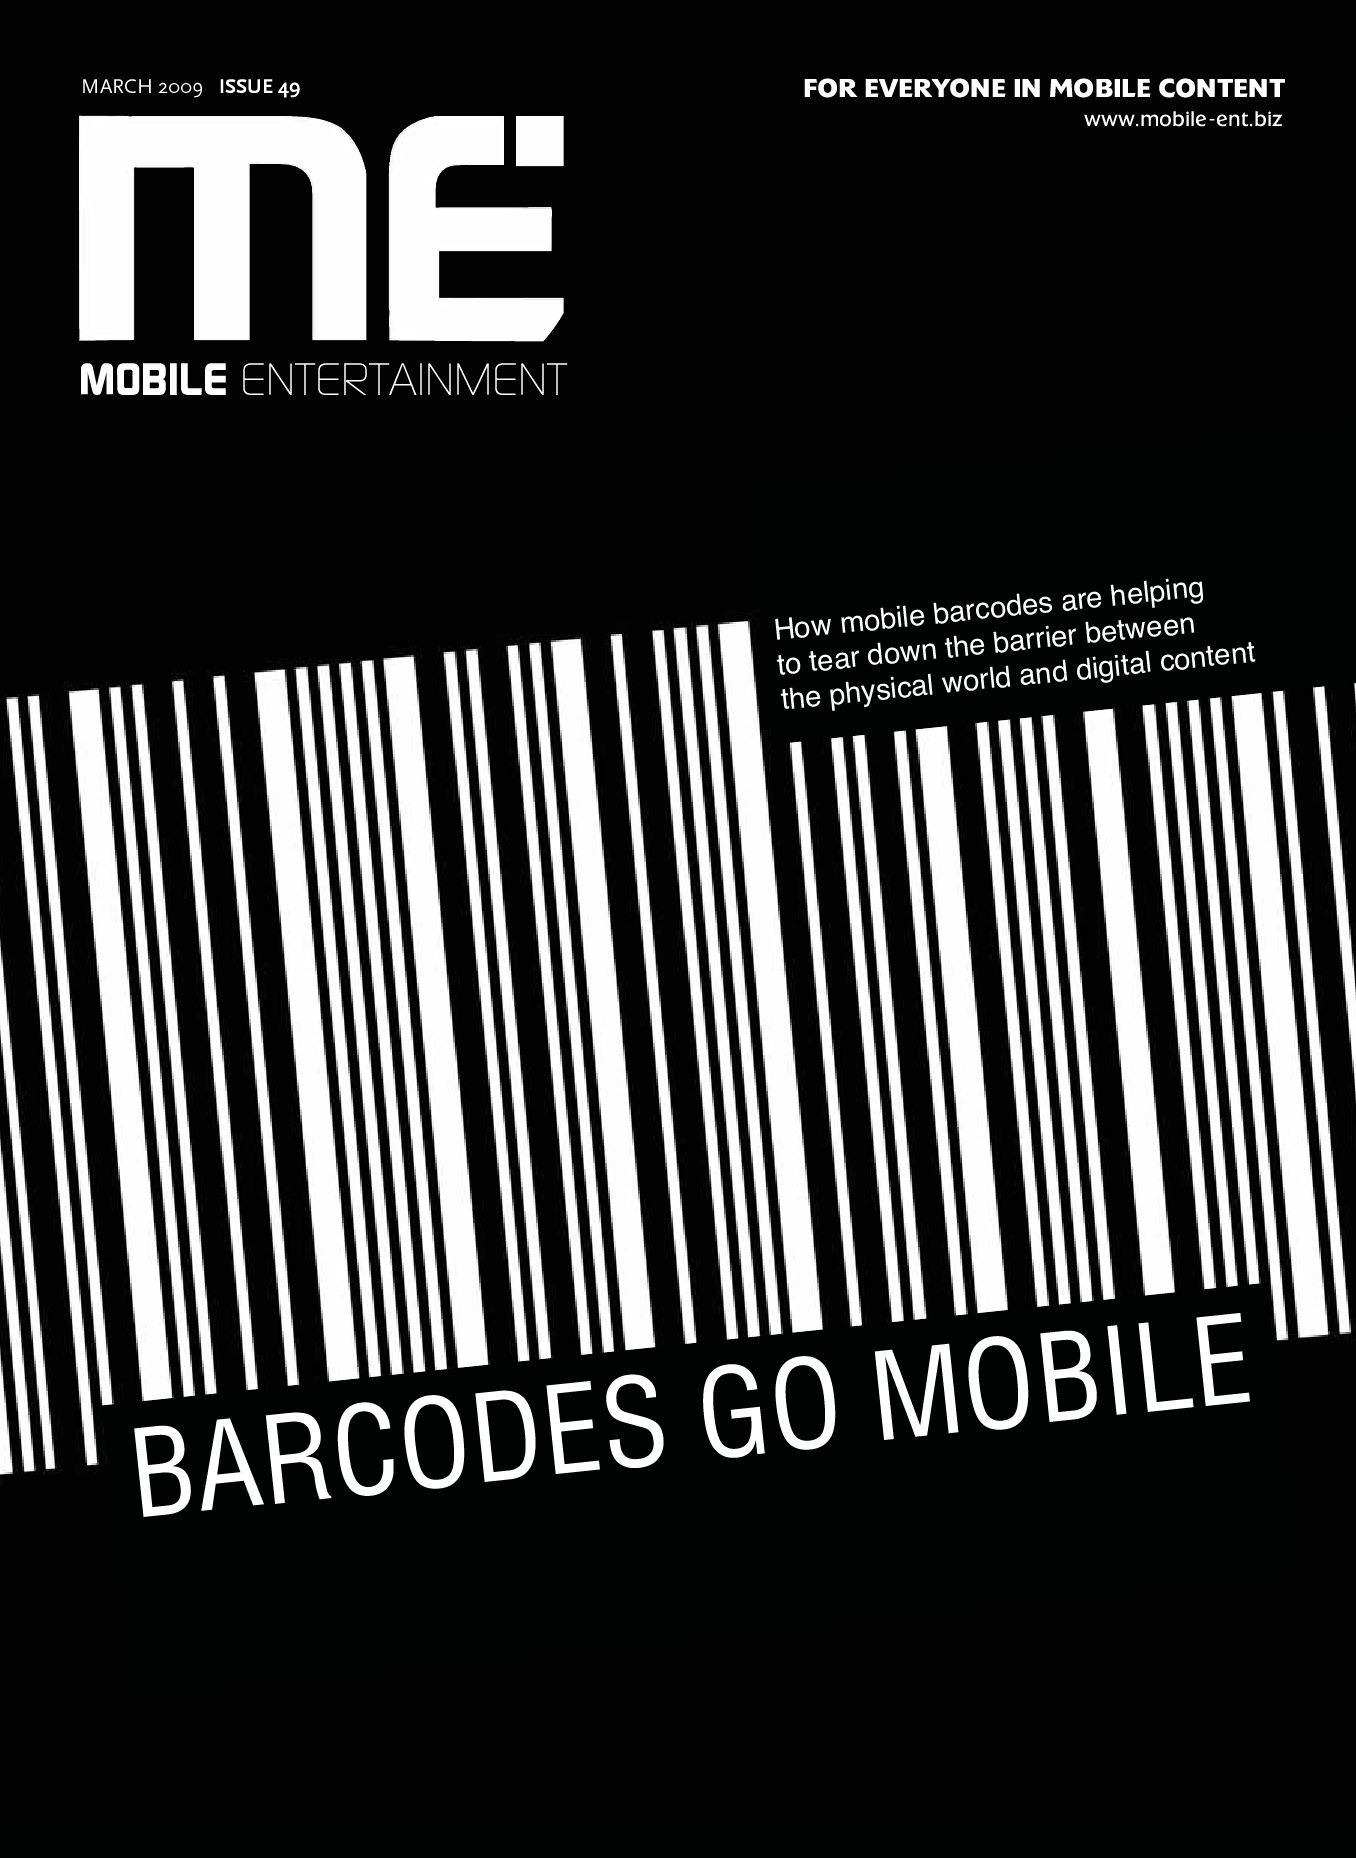 Mobile Entertainment issue49, March 2009 by Intent Media (now Newbay